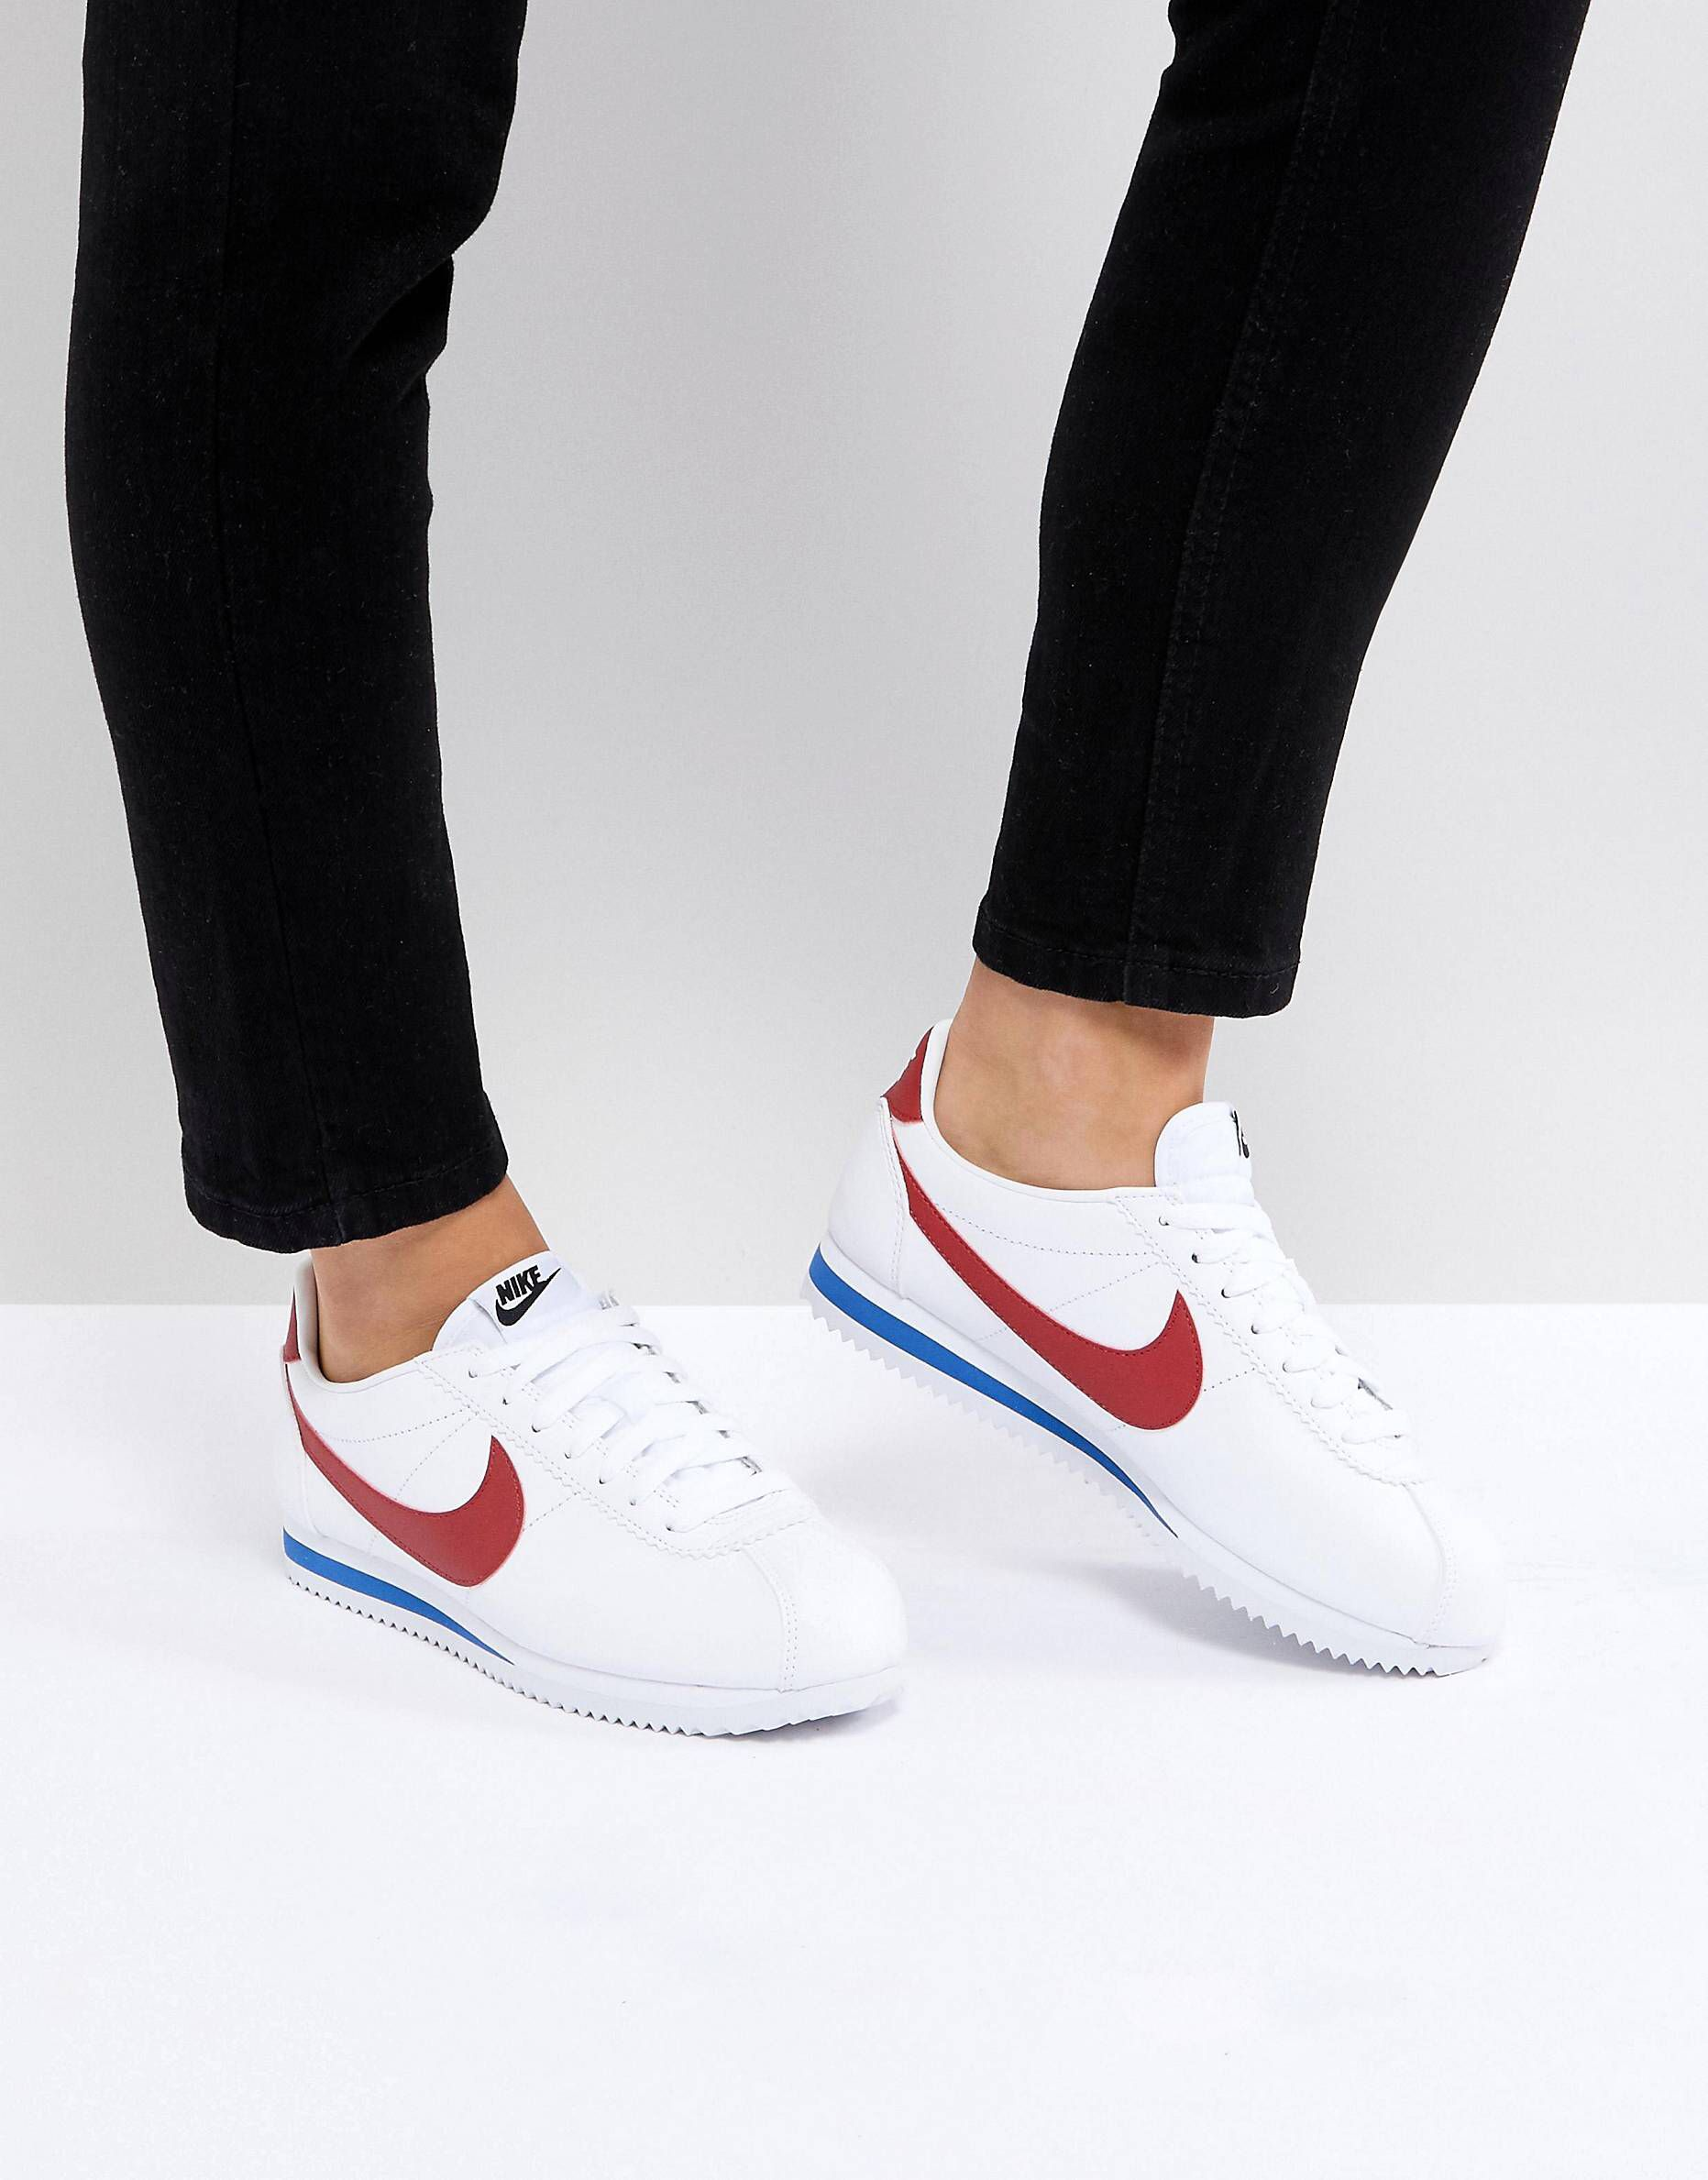 61e491b7318b Discover women s trainers with ASOS. From trainers to plimsolls and retro  styles